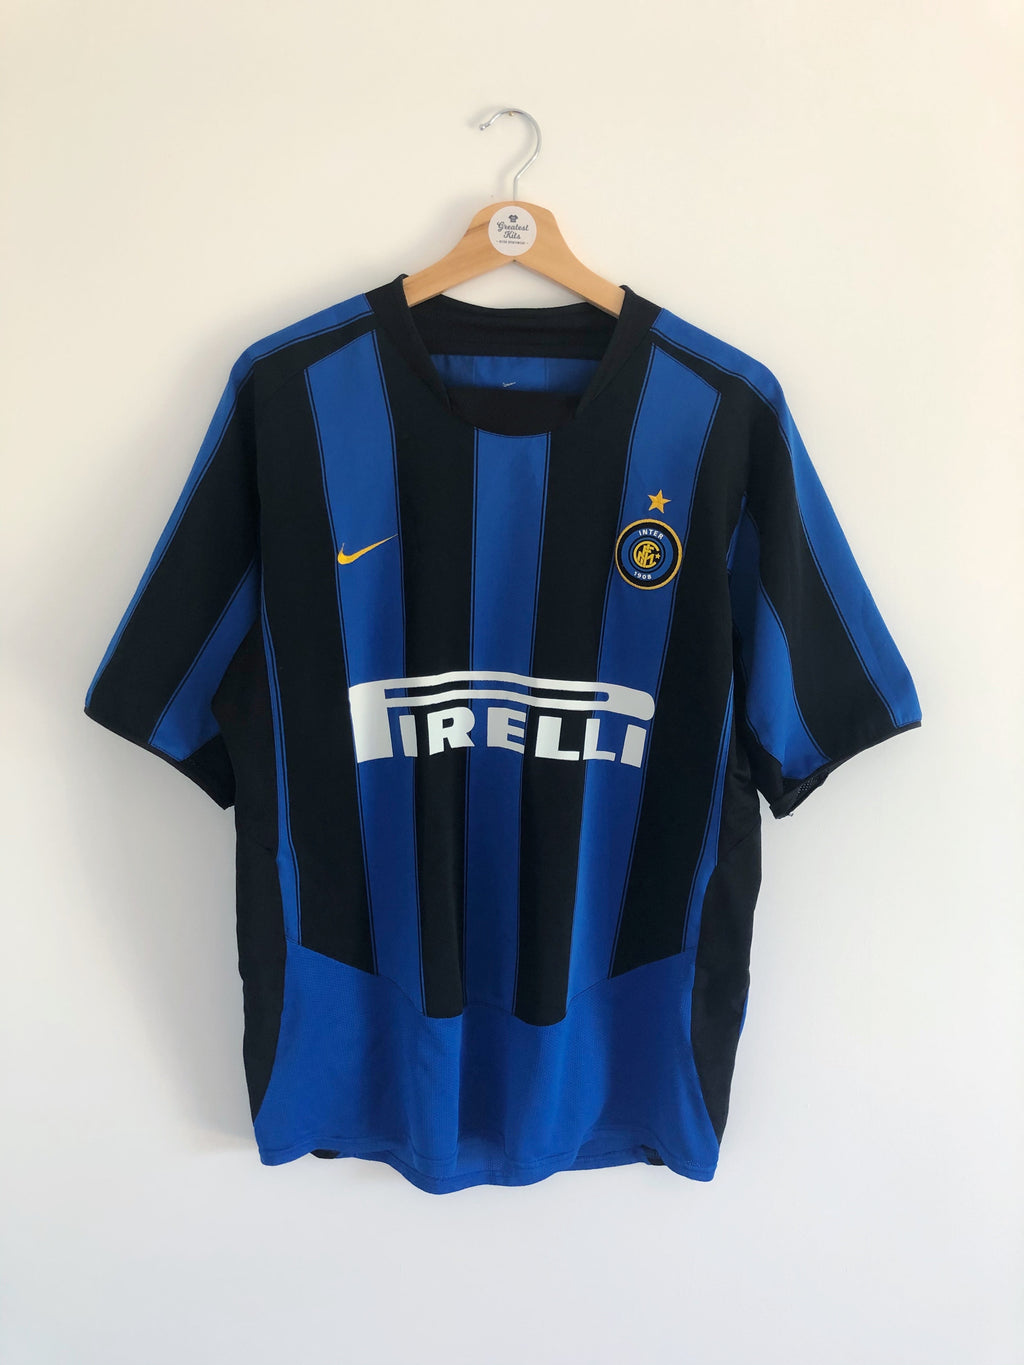 2003/04 Inter Milan Home Shirt (M) 8/10